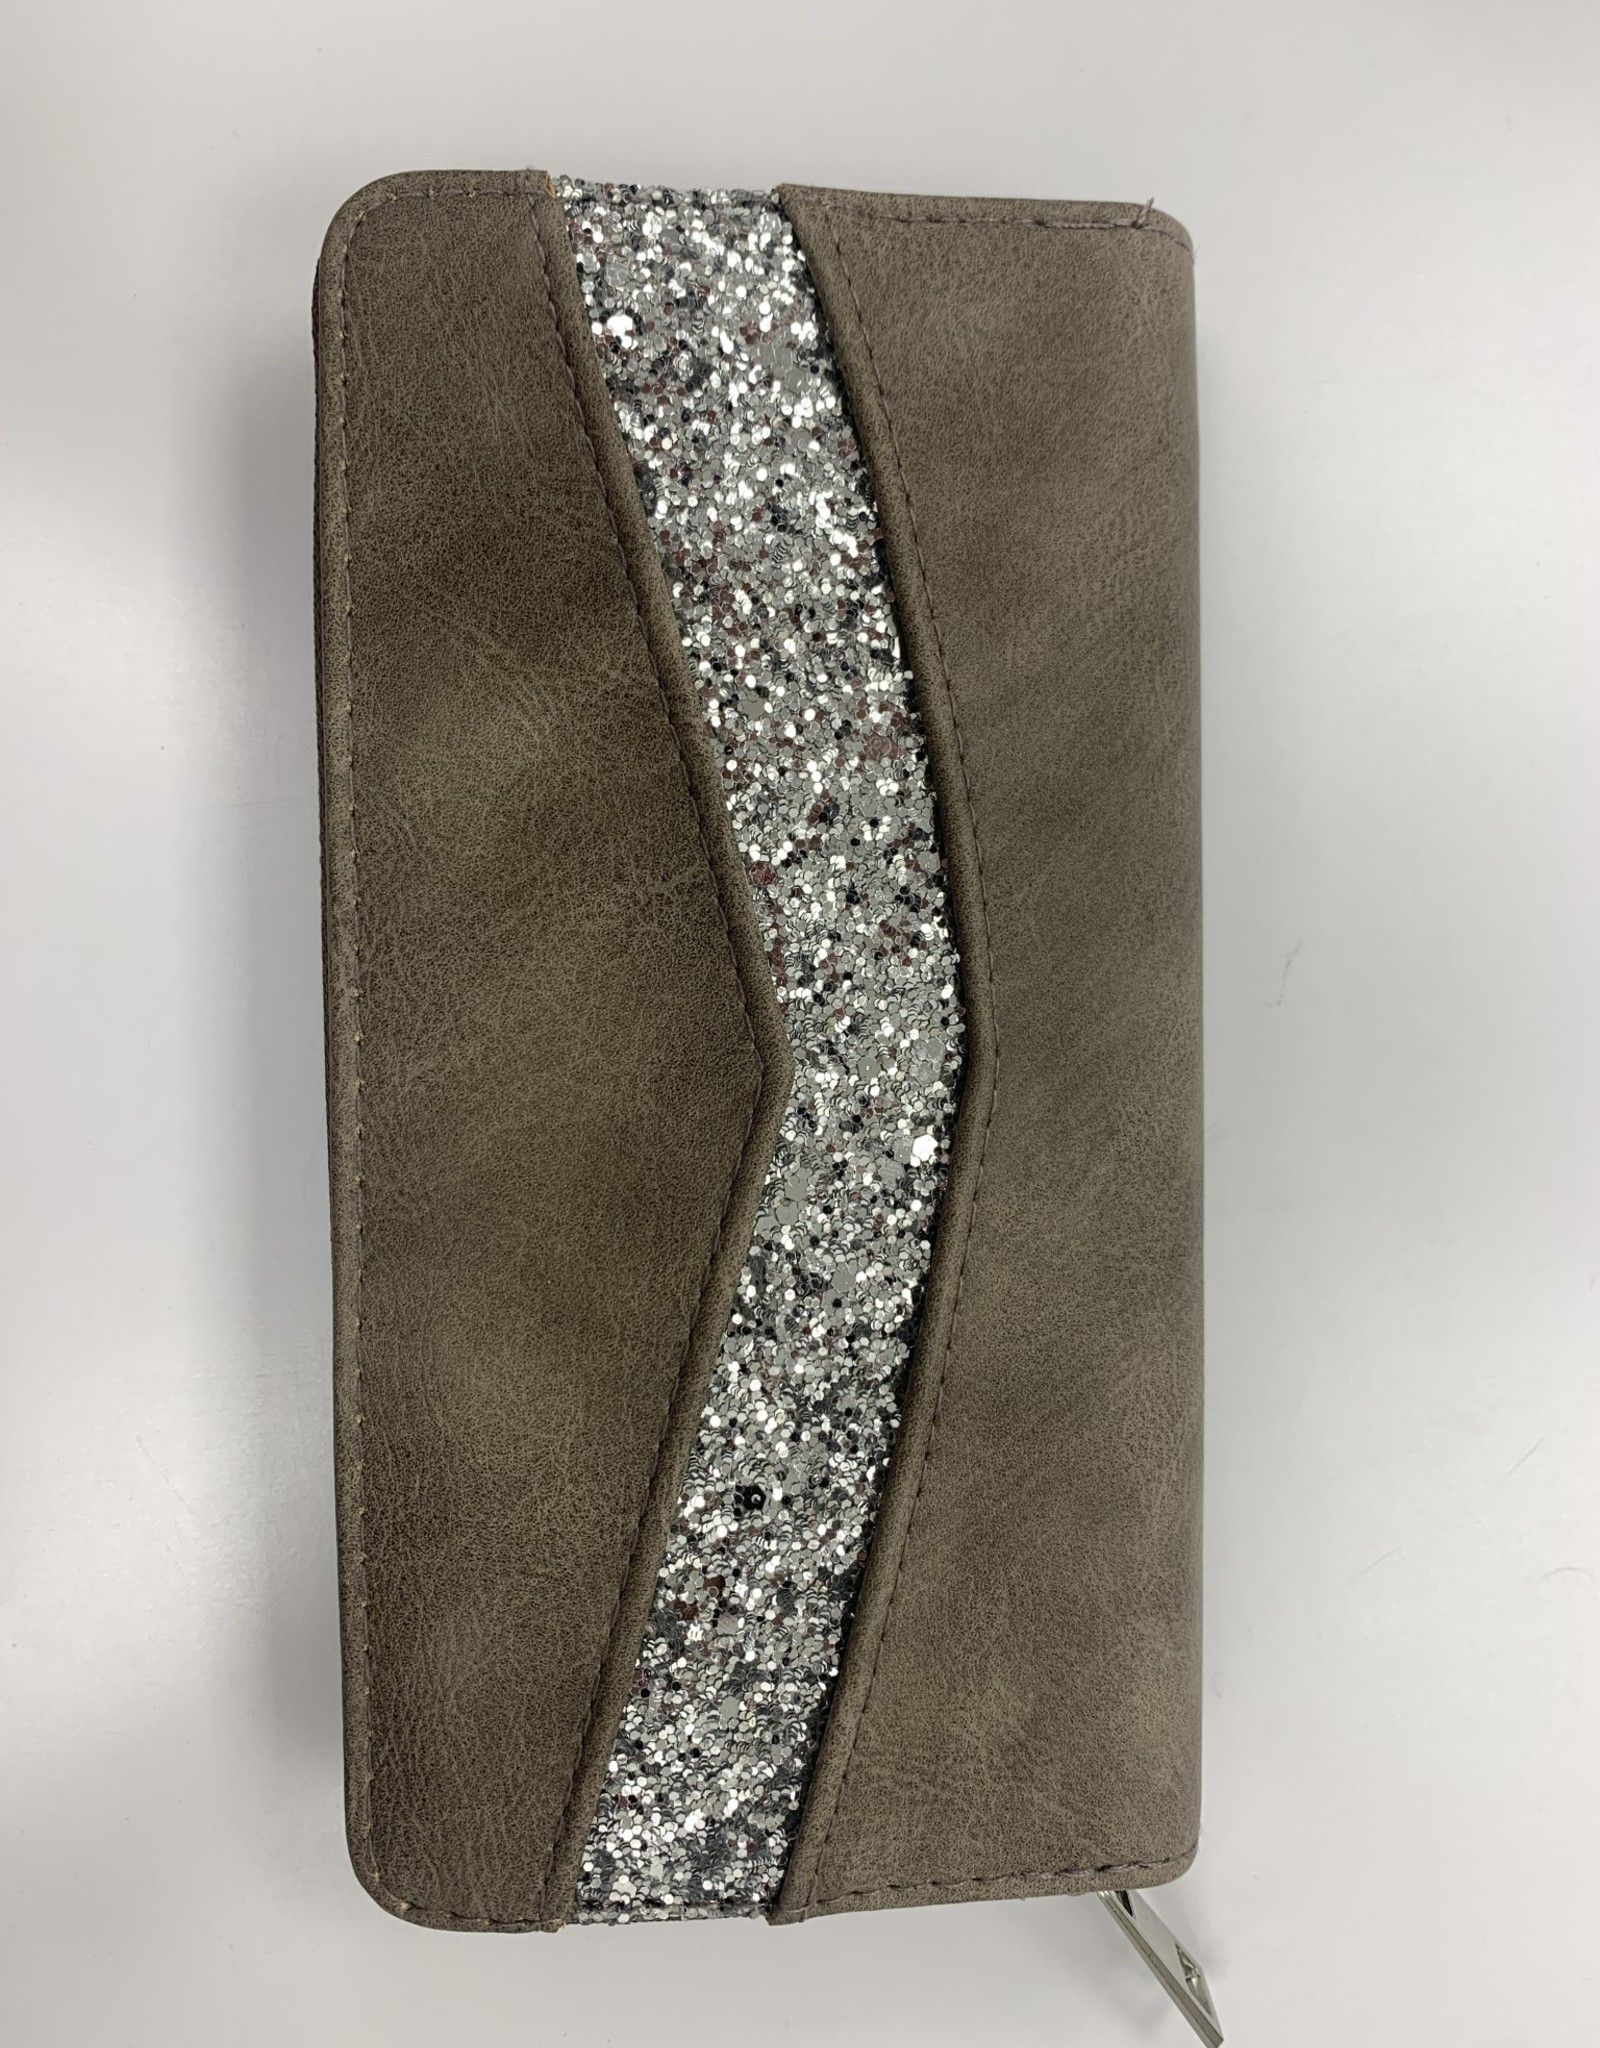 EMB Portefeuille taupe avec strass